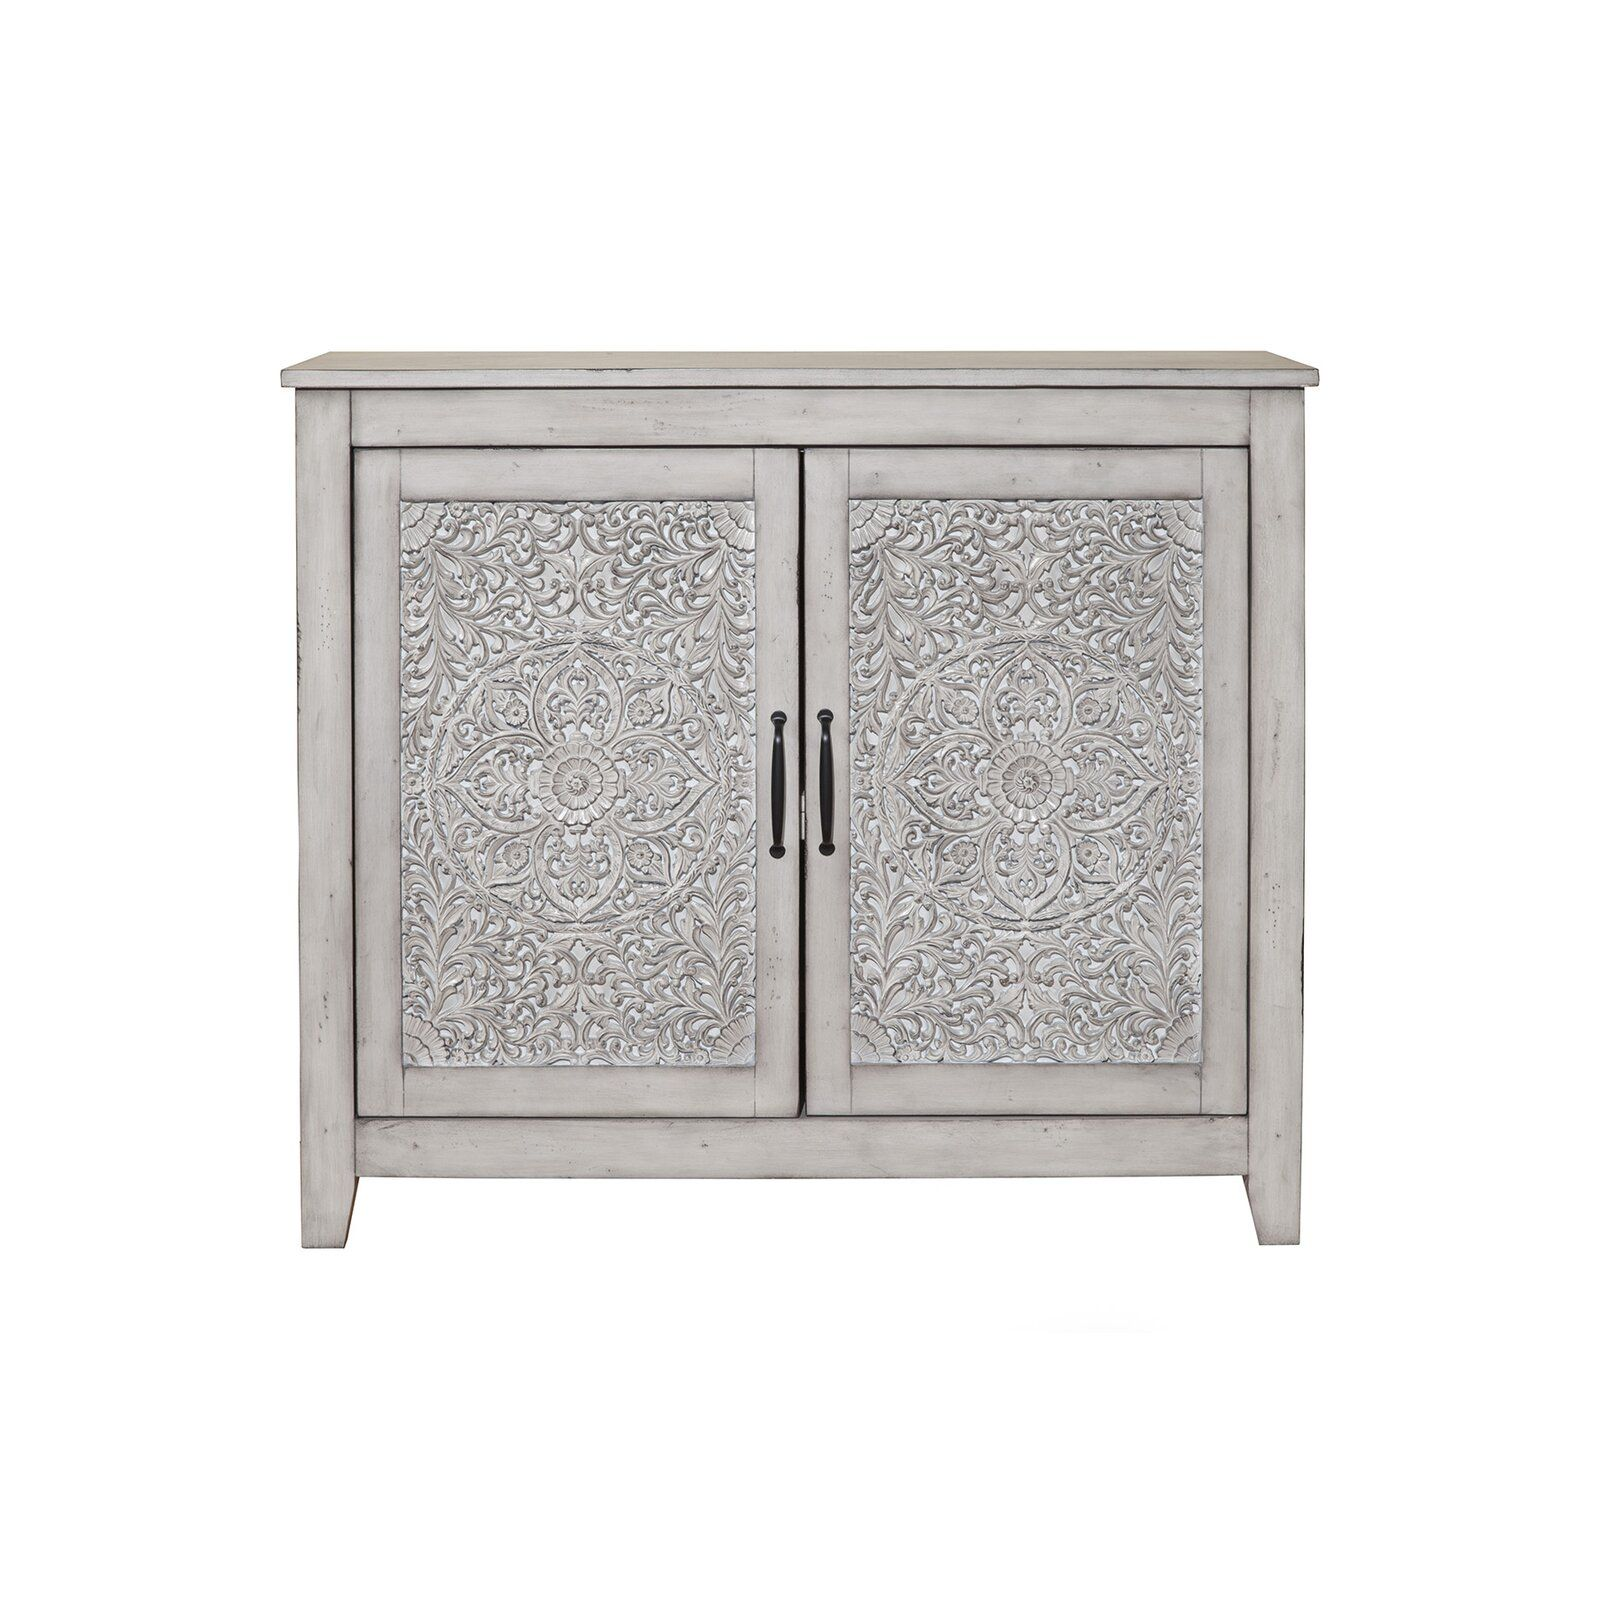 Odessa 2 Door Accent Cabinet Accent Doors Accent Cabinet Furniture